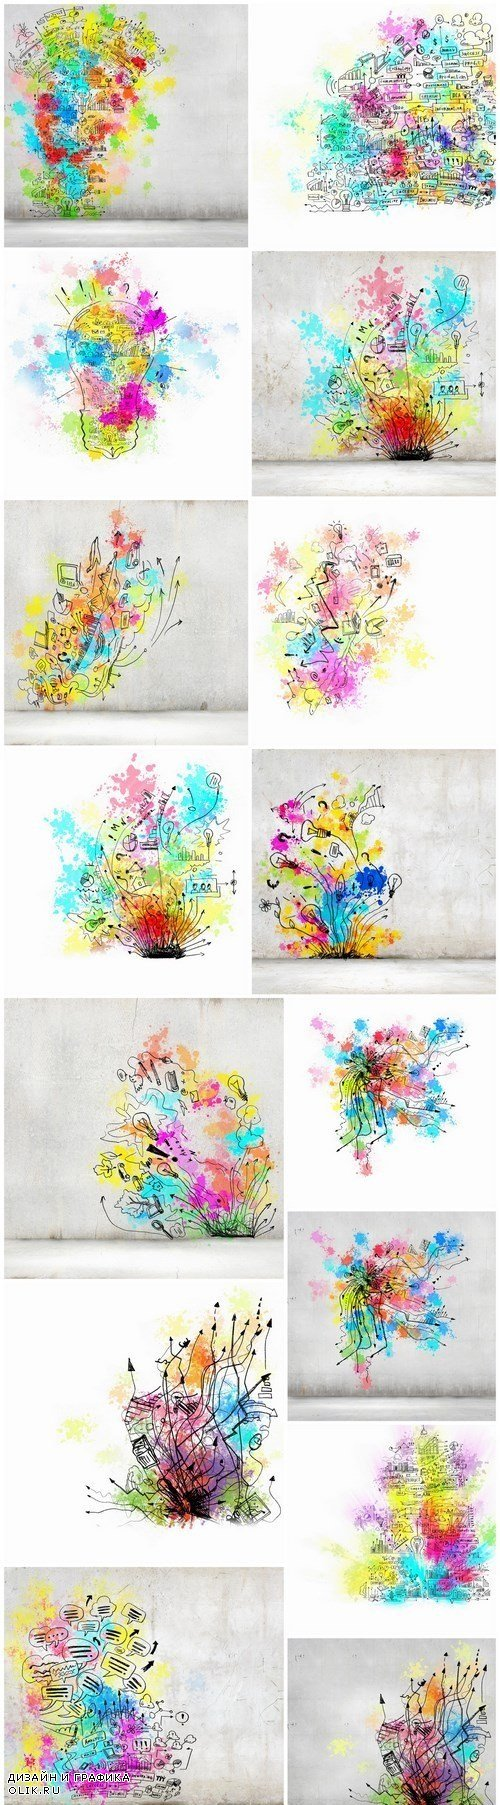 Multicolored Creative Ideas & Business Concept 2 - 15xUHQ JPEG Photo Stock